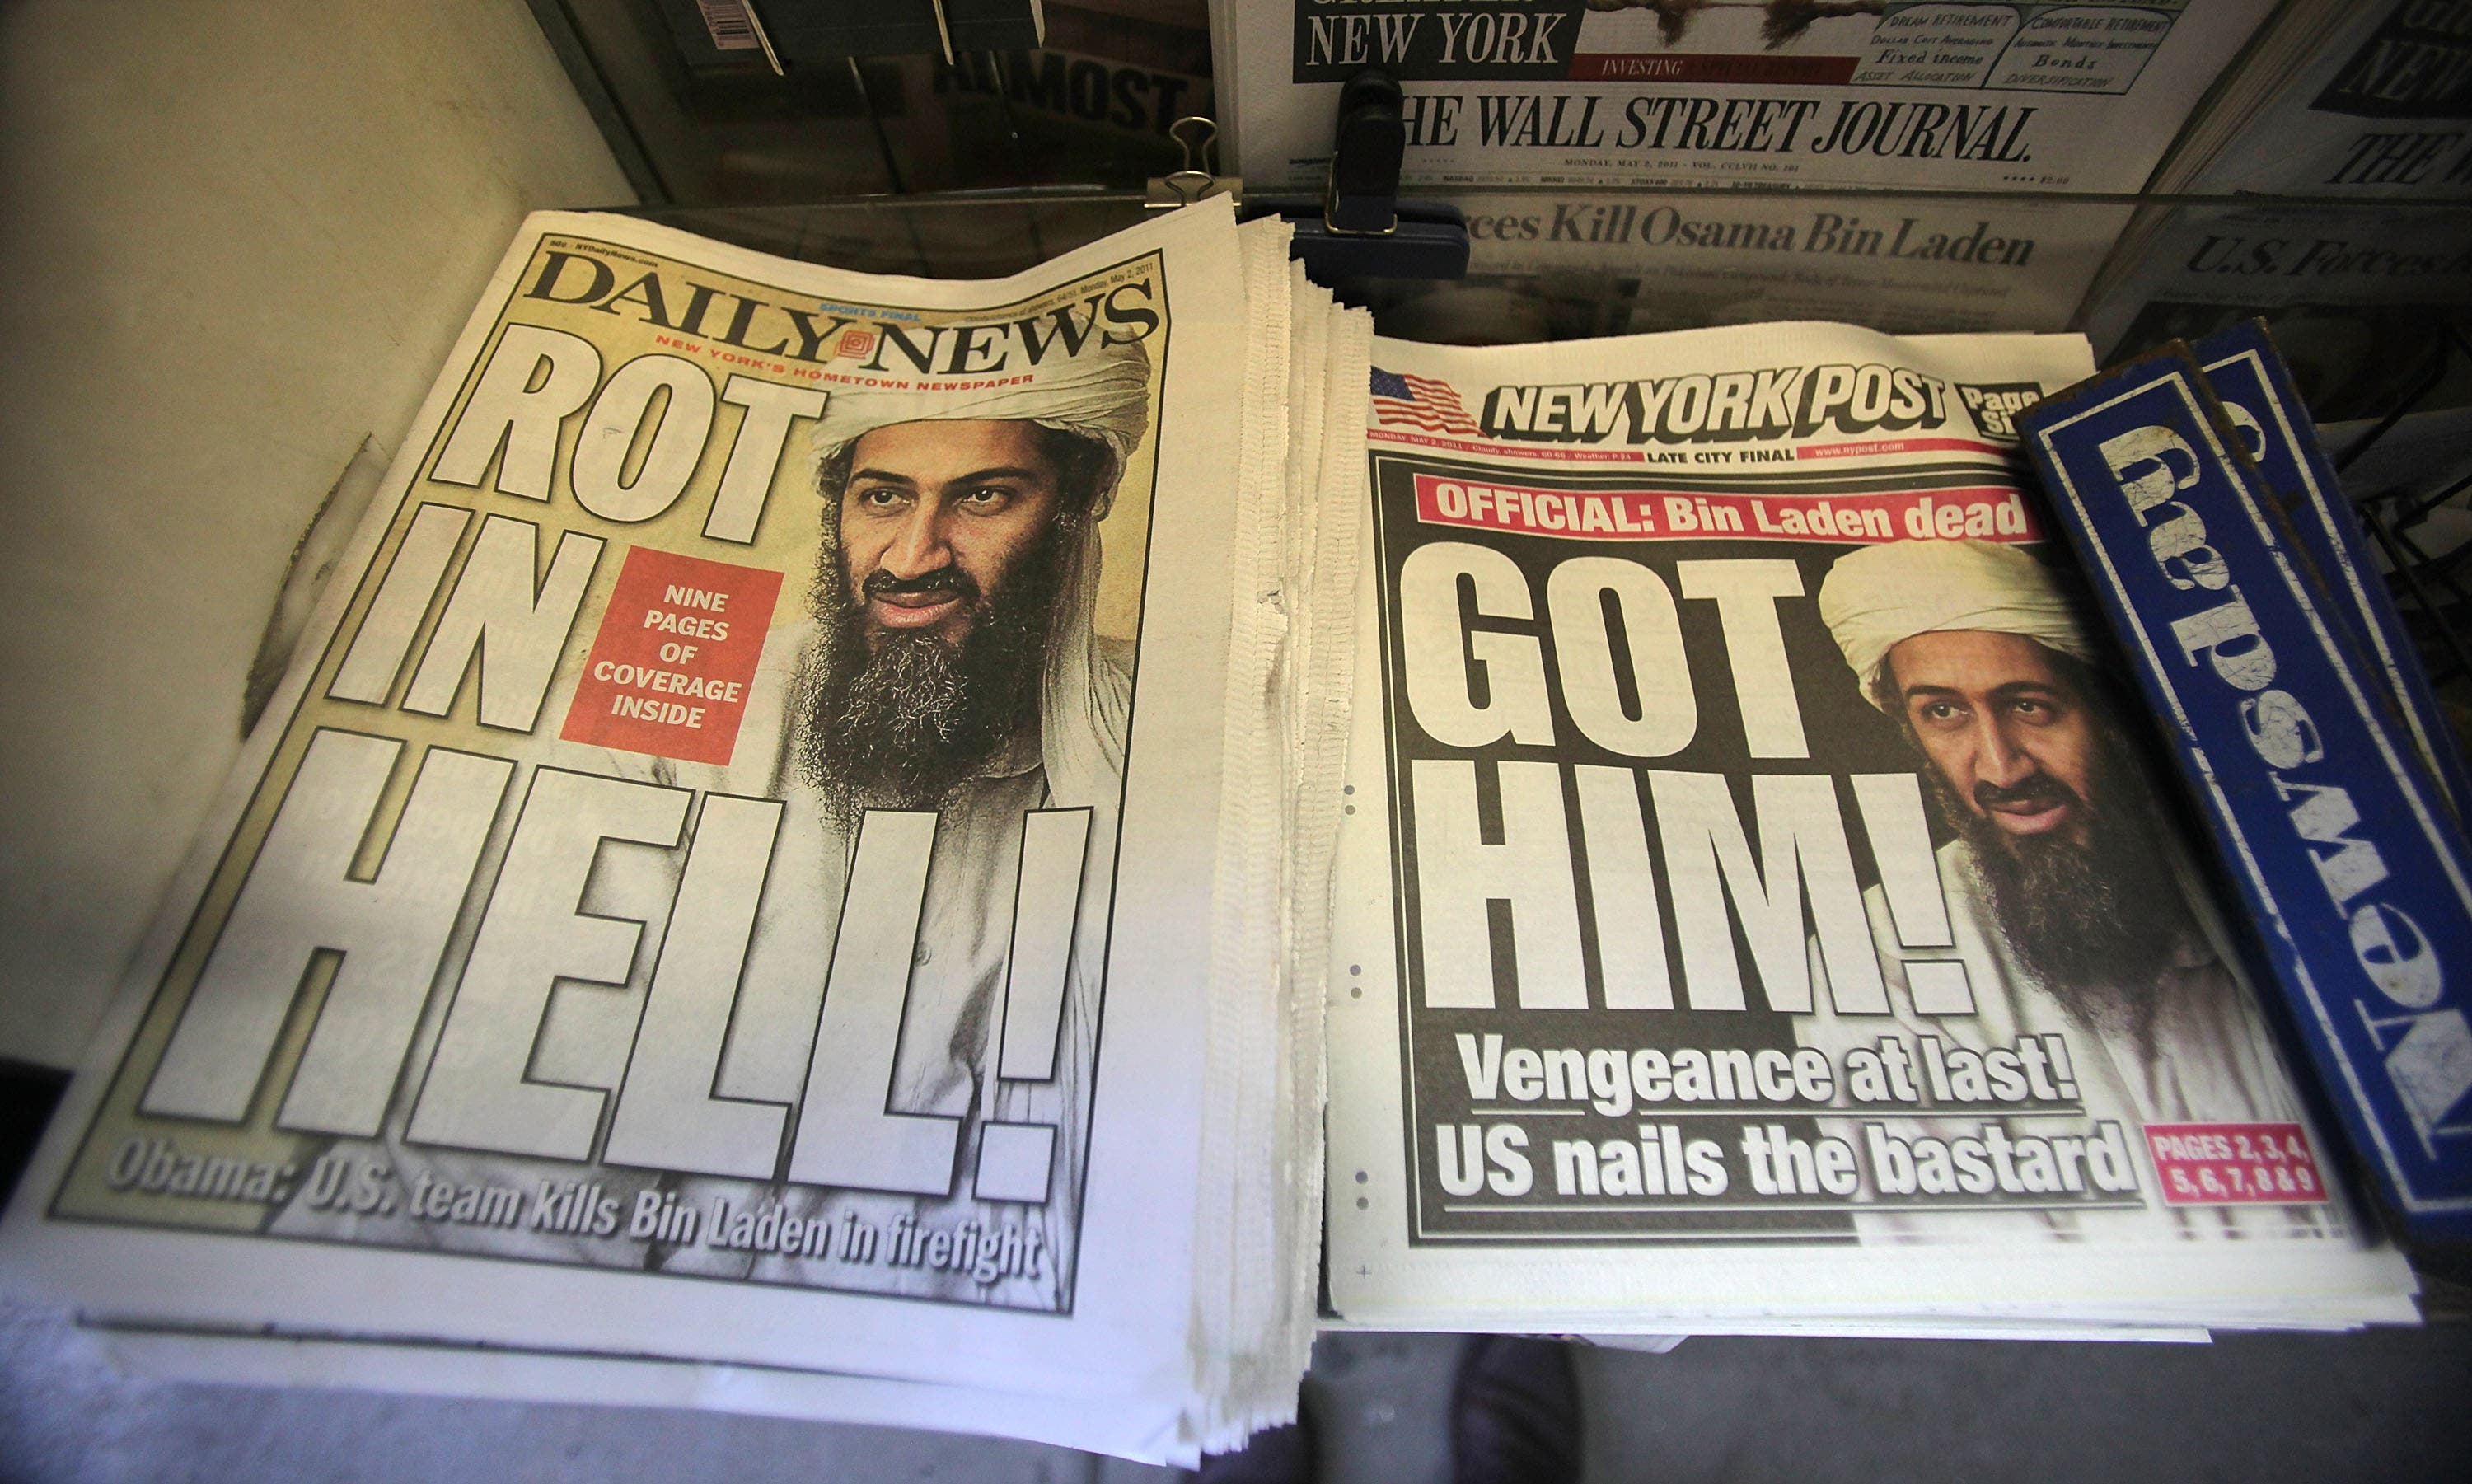 Obituaries for Osama bin-Laden have been ready to go for over a decade now.